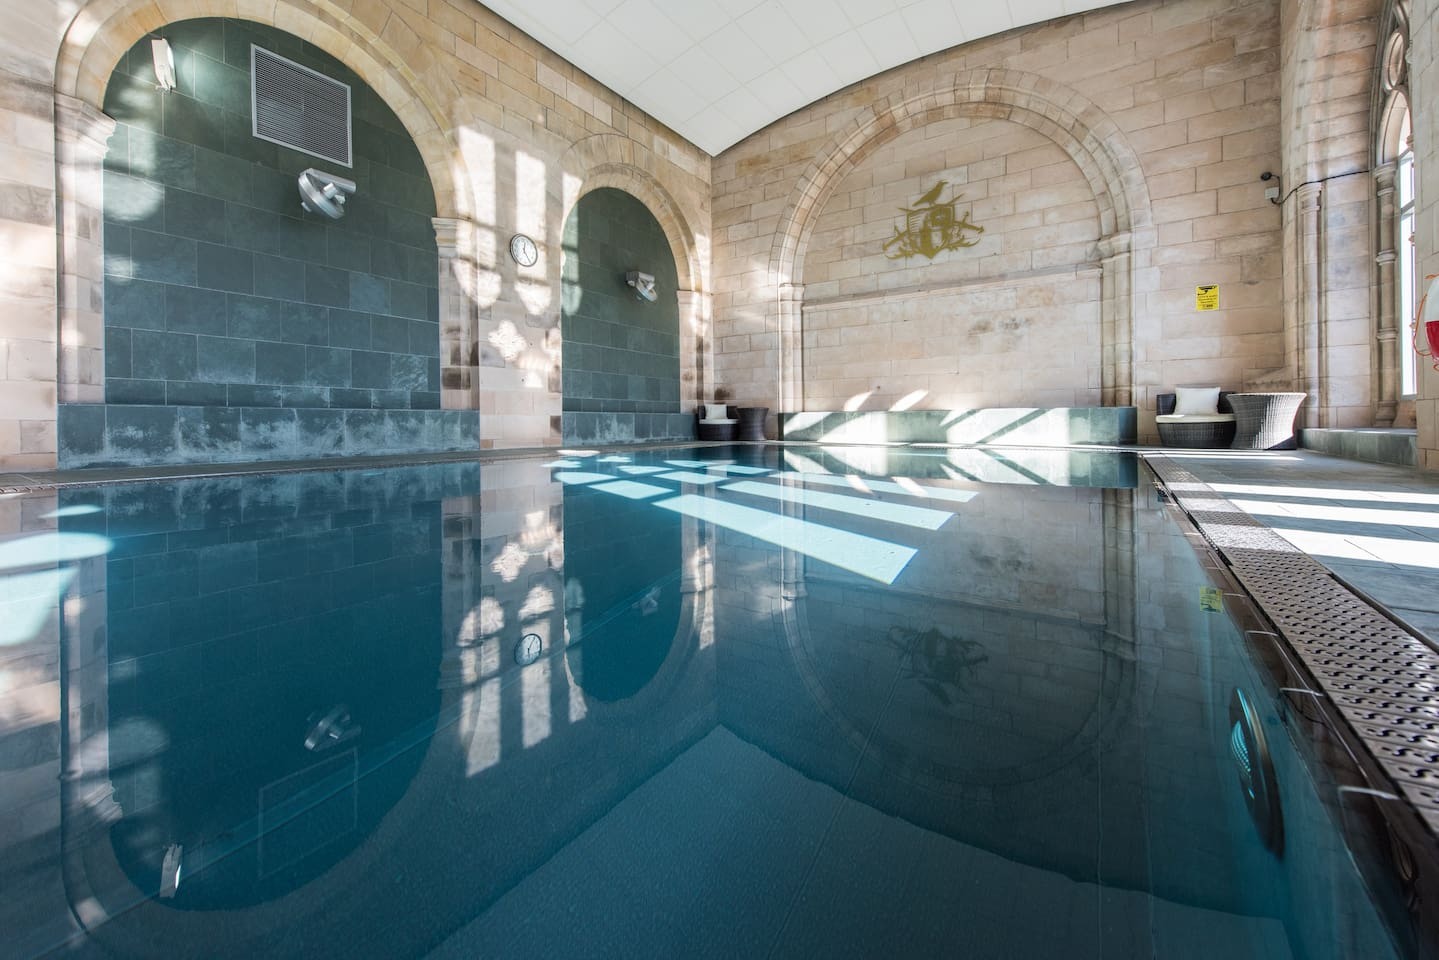 Also in the abbey is an indoor heated pool which guests can use